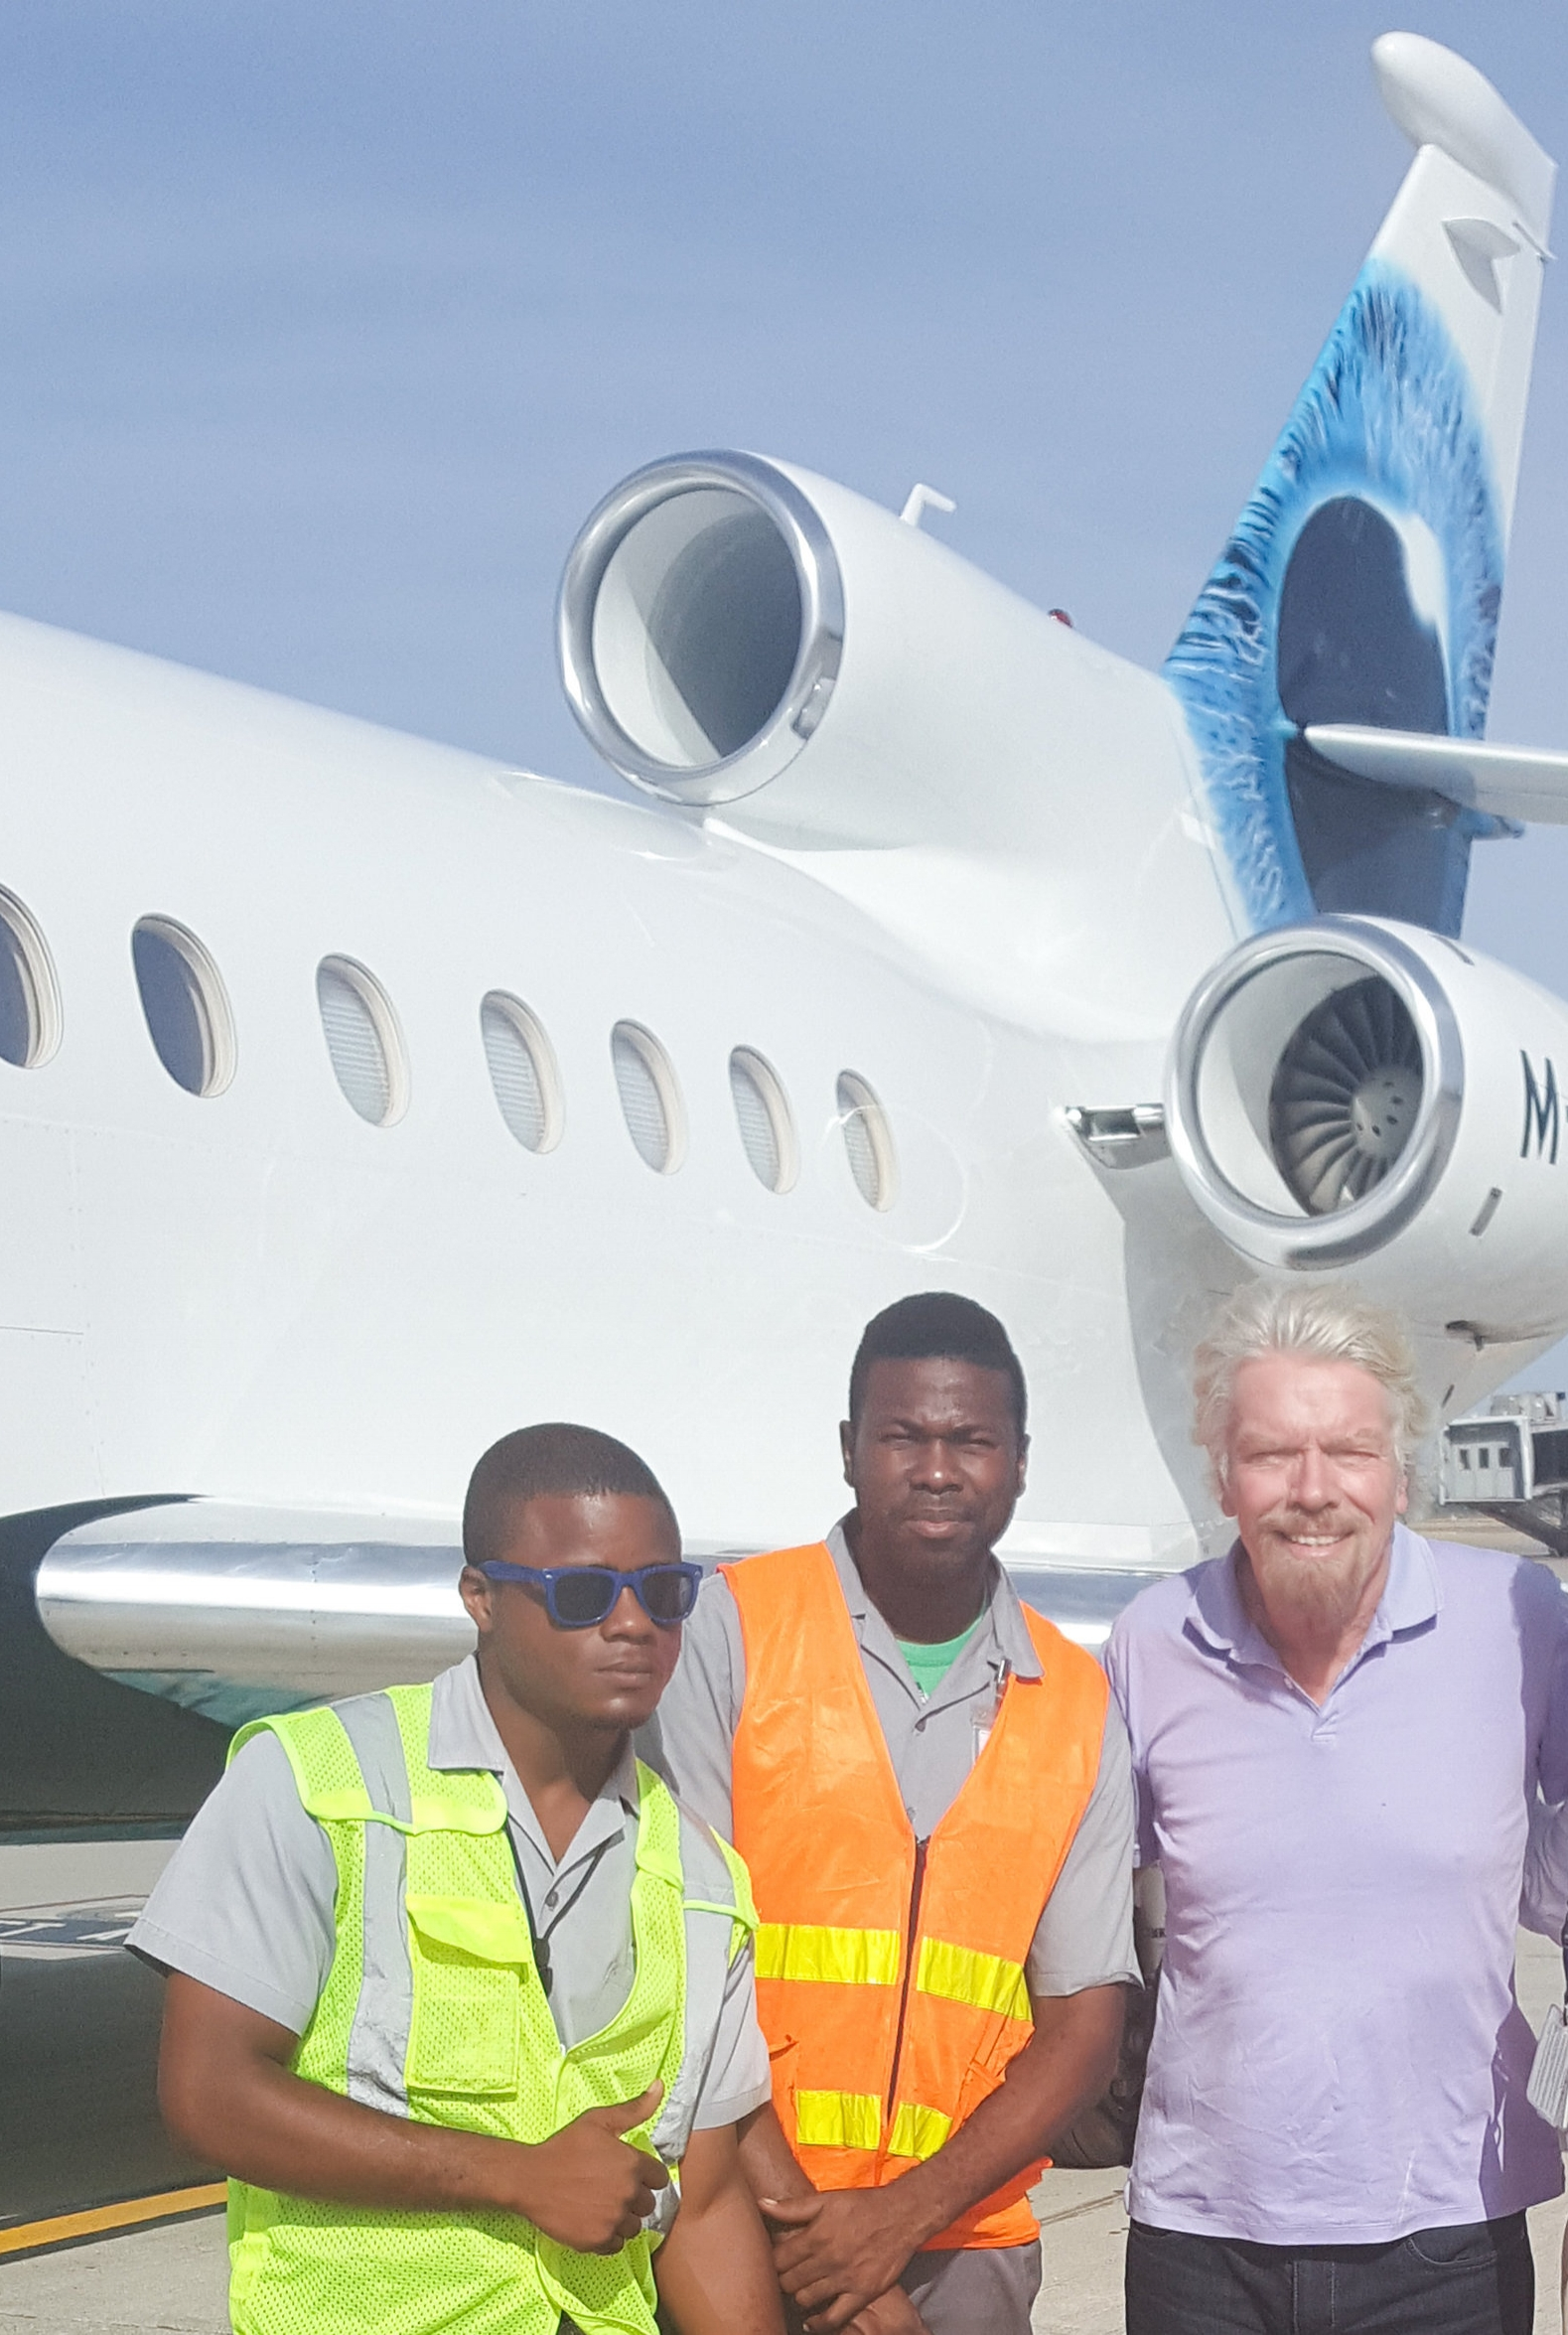 Sir Richard Branson with our team at Normal Manley Intl. Airport